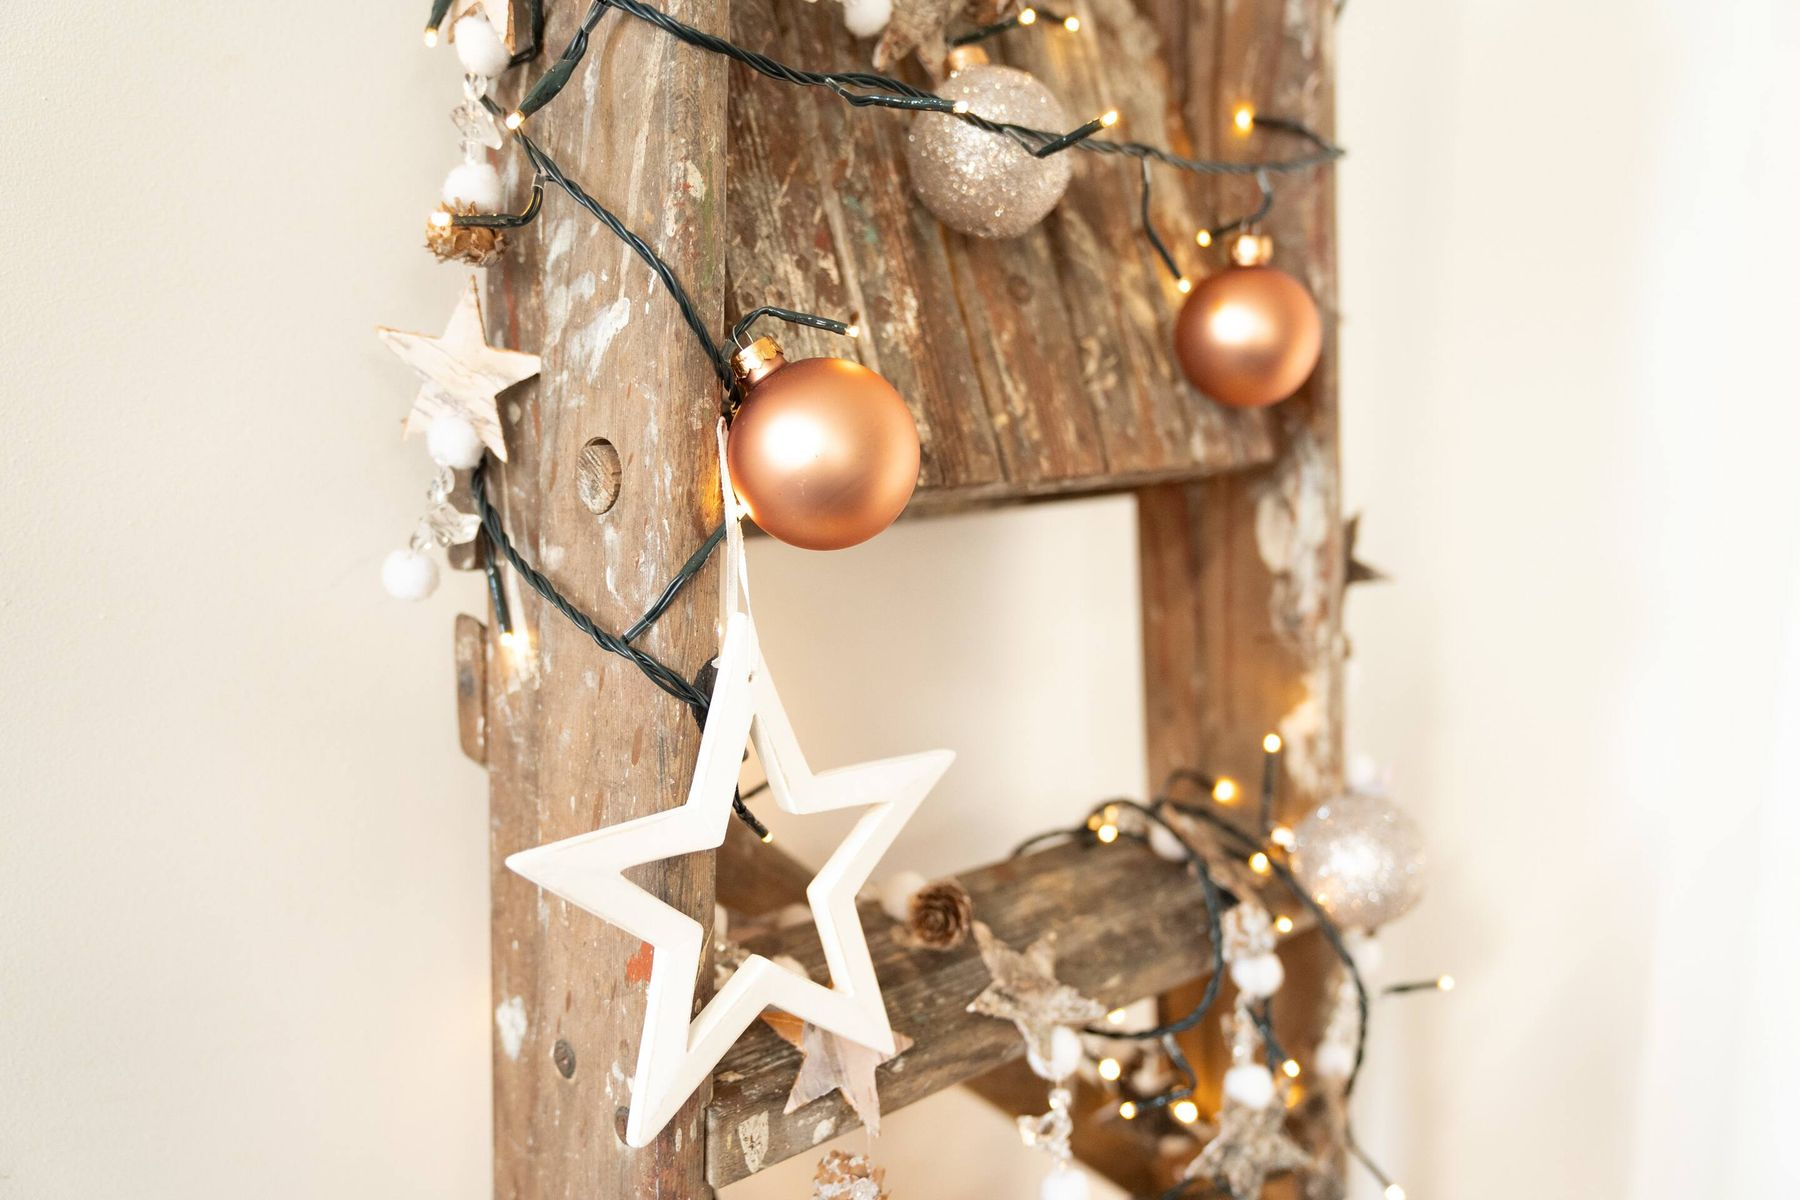 Christmas tree made with wooden ladder and ornaments